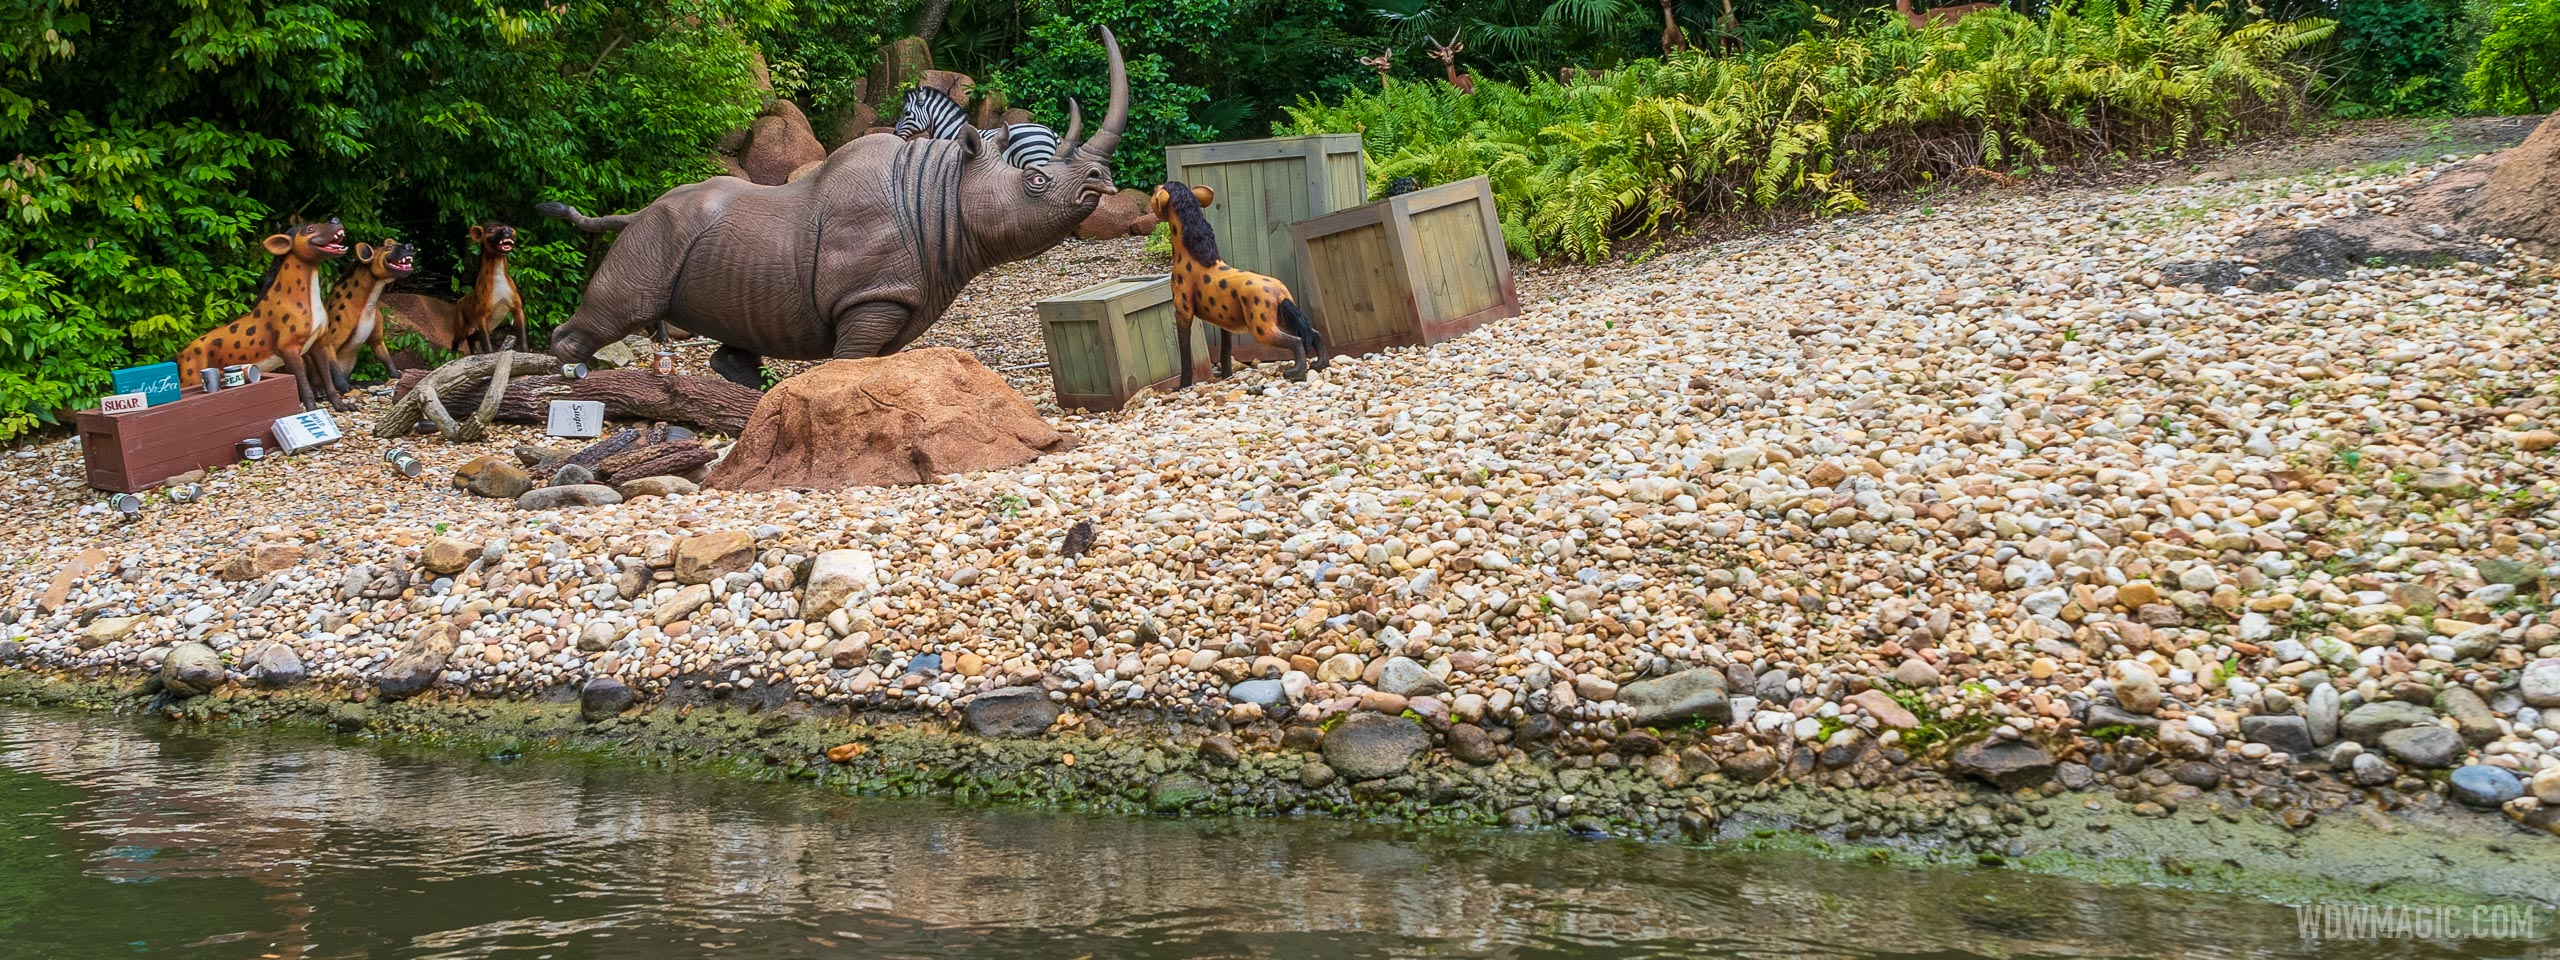 Summary of the changes so far at Disney World's Jungle Cruise